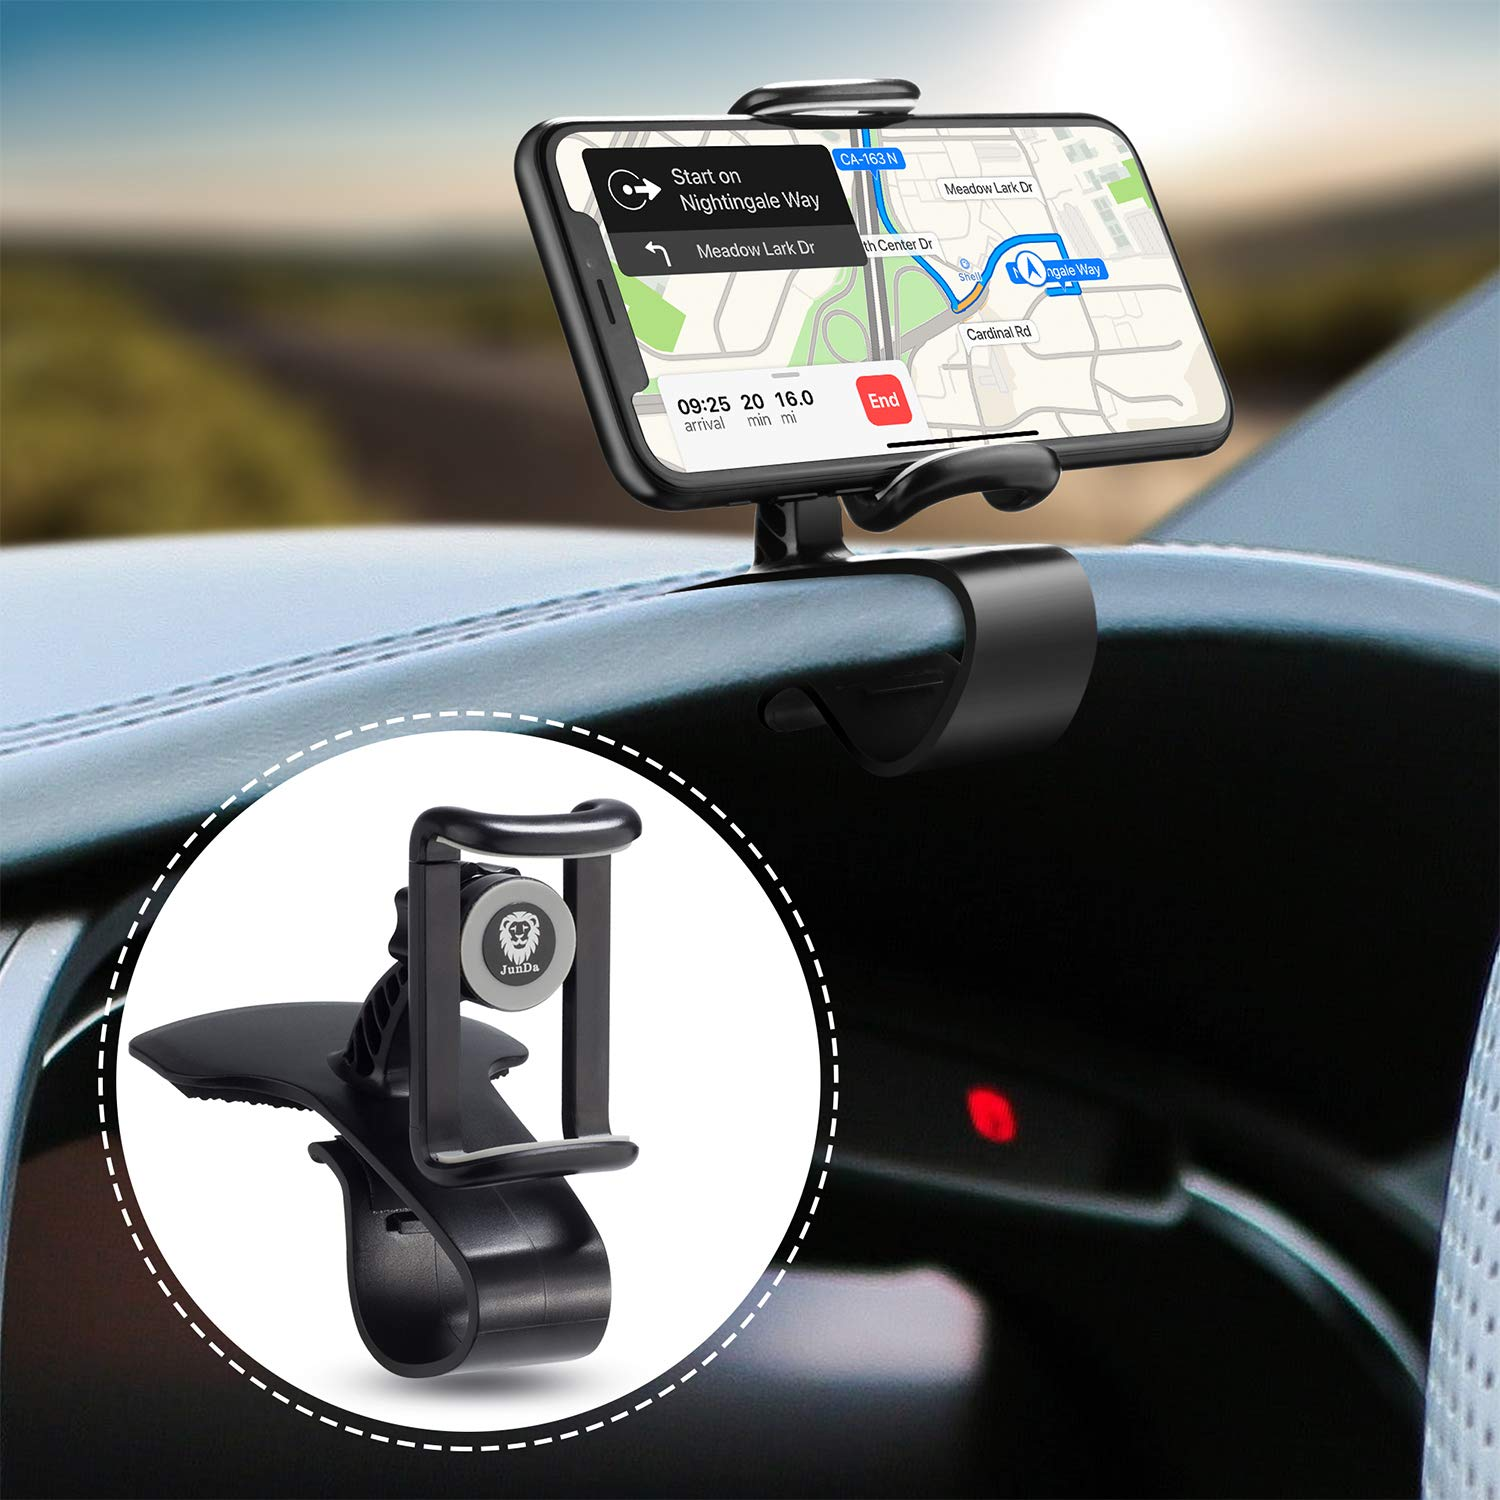 JunDa Car Phone Holder 360-Degree Rotation Cell Phone Holder Suitable for 4 to 7 inch Smartphones,Rotating Dashboard Clip Mount Stand by JunDa